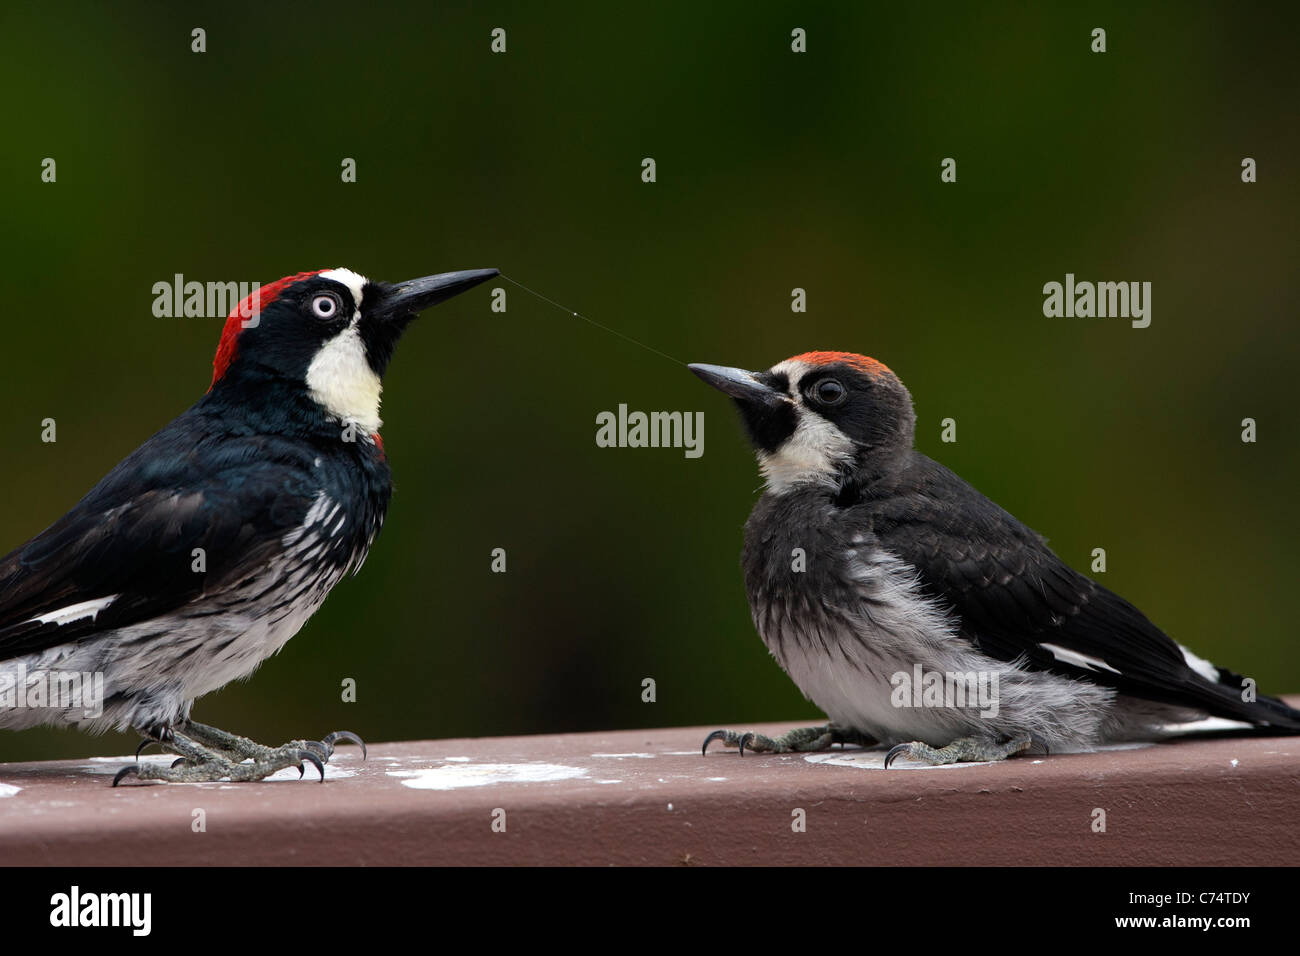 Adult and Immature Male Acorn Woodpeckers with a String of Saliva between their beaks after being fed - Stock Image